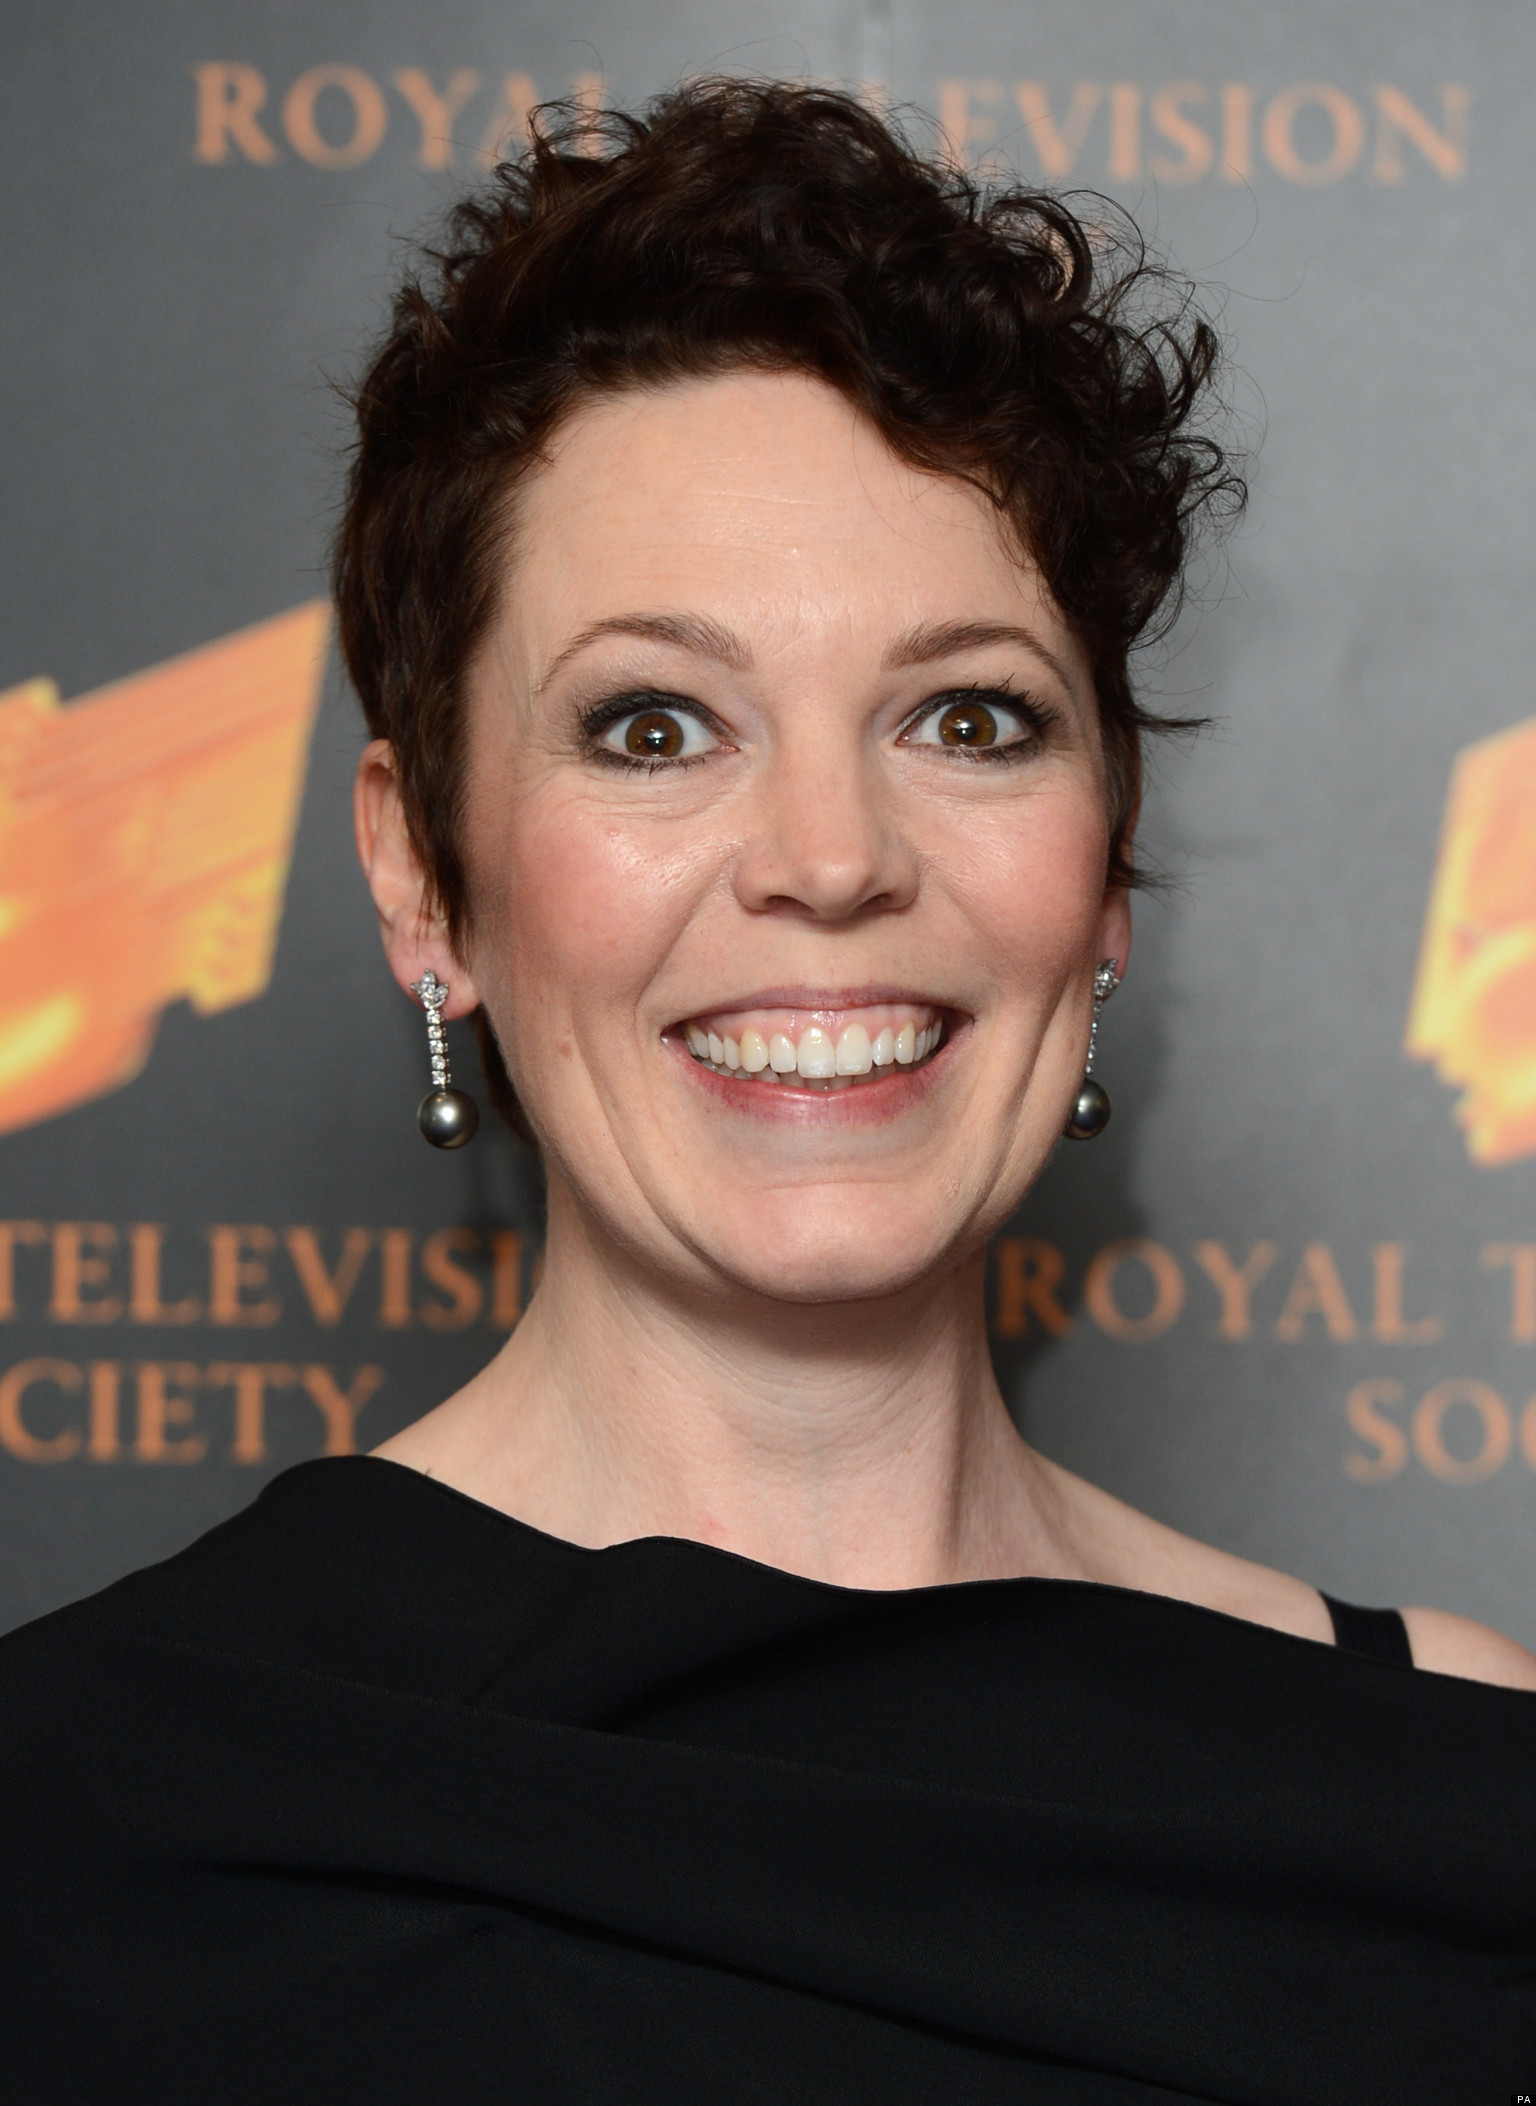 The 43-year old daughter of father (?) and mother(?), 170 cm tall Olivia Colman in 2017 photo